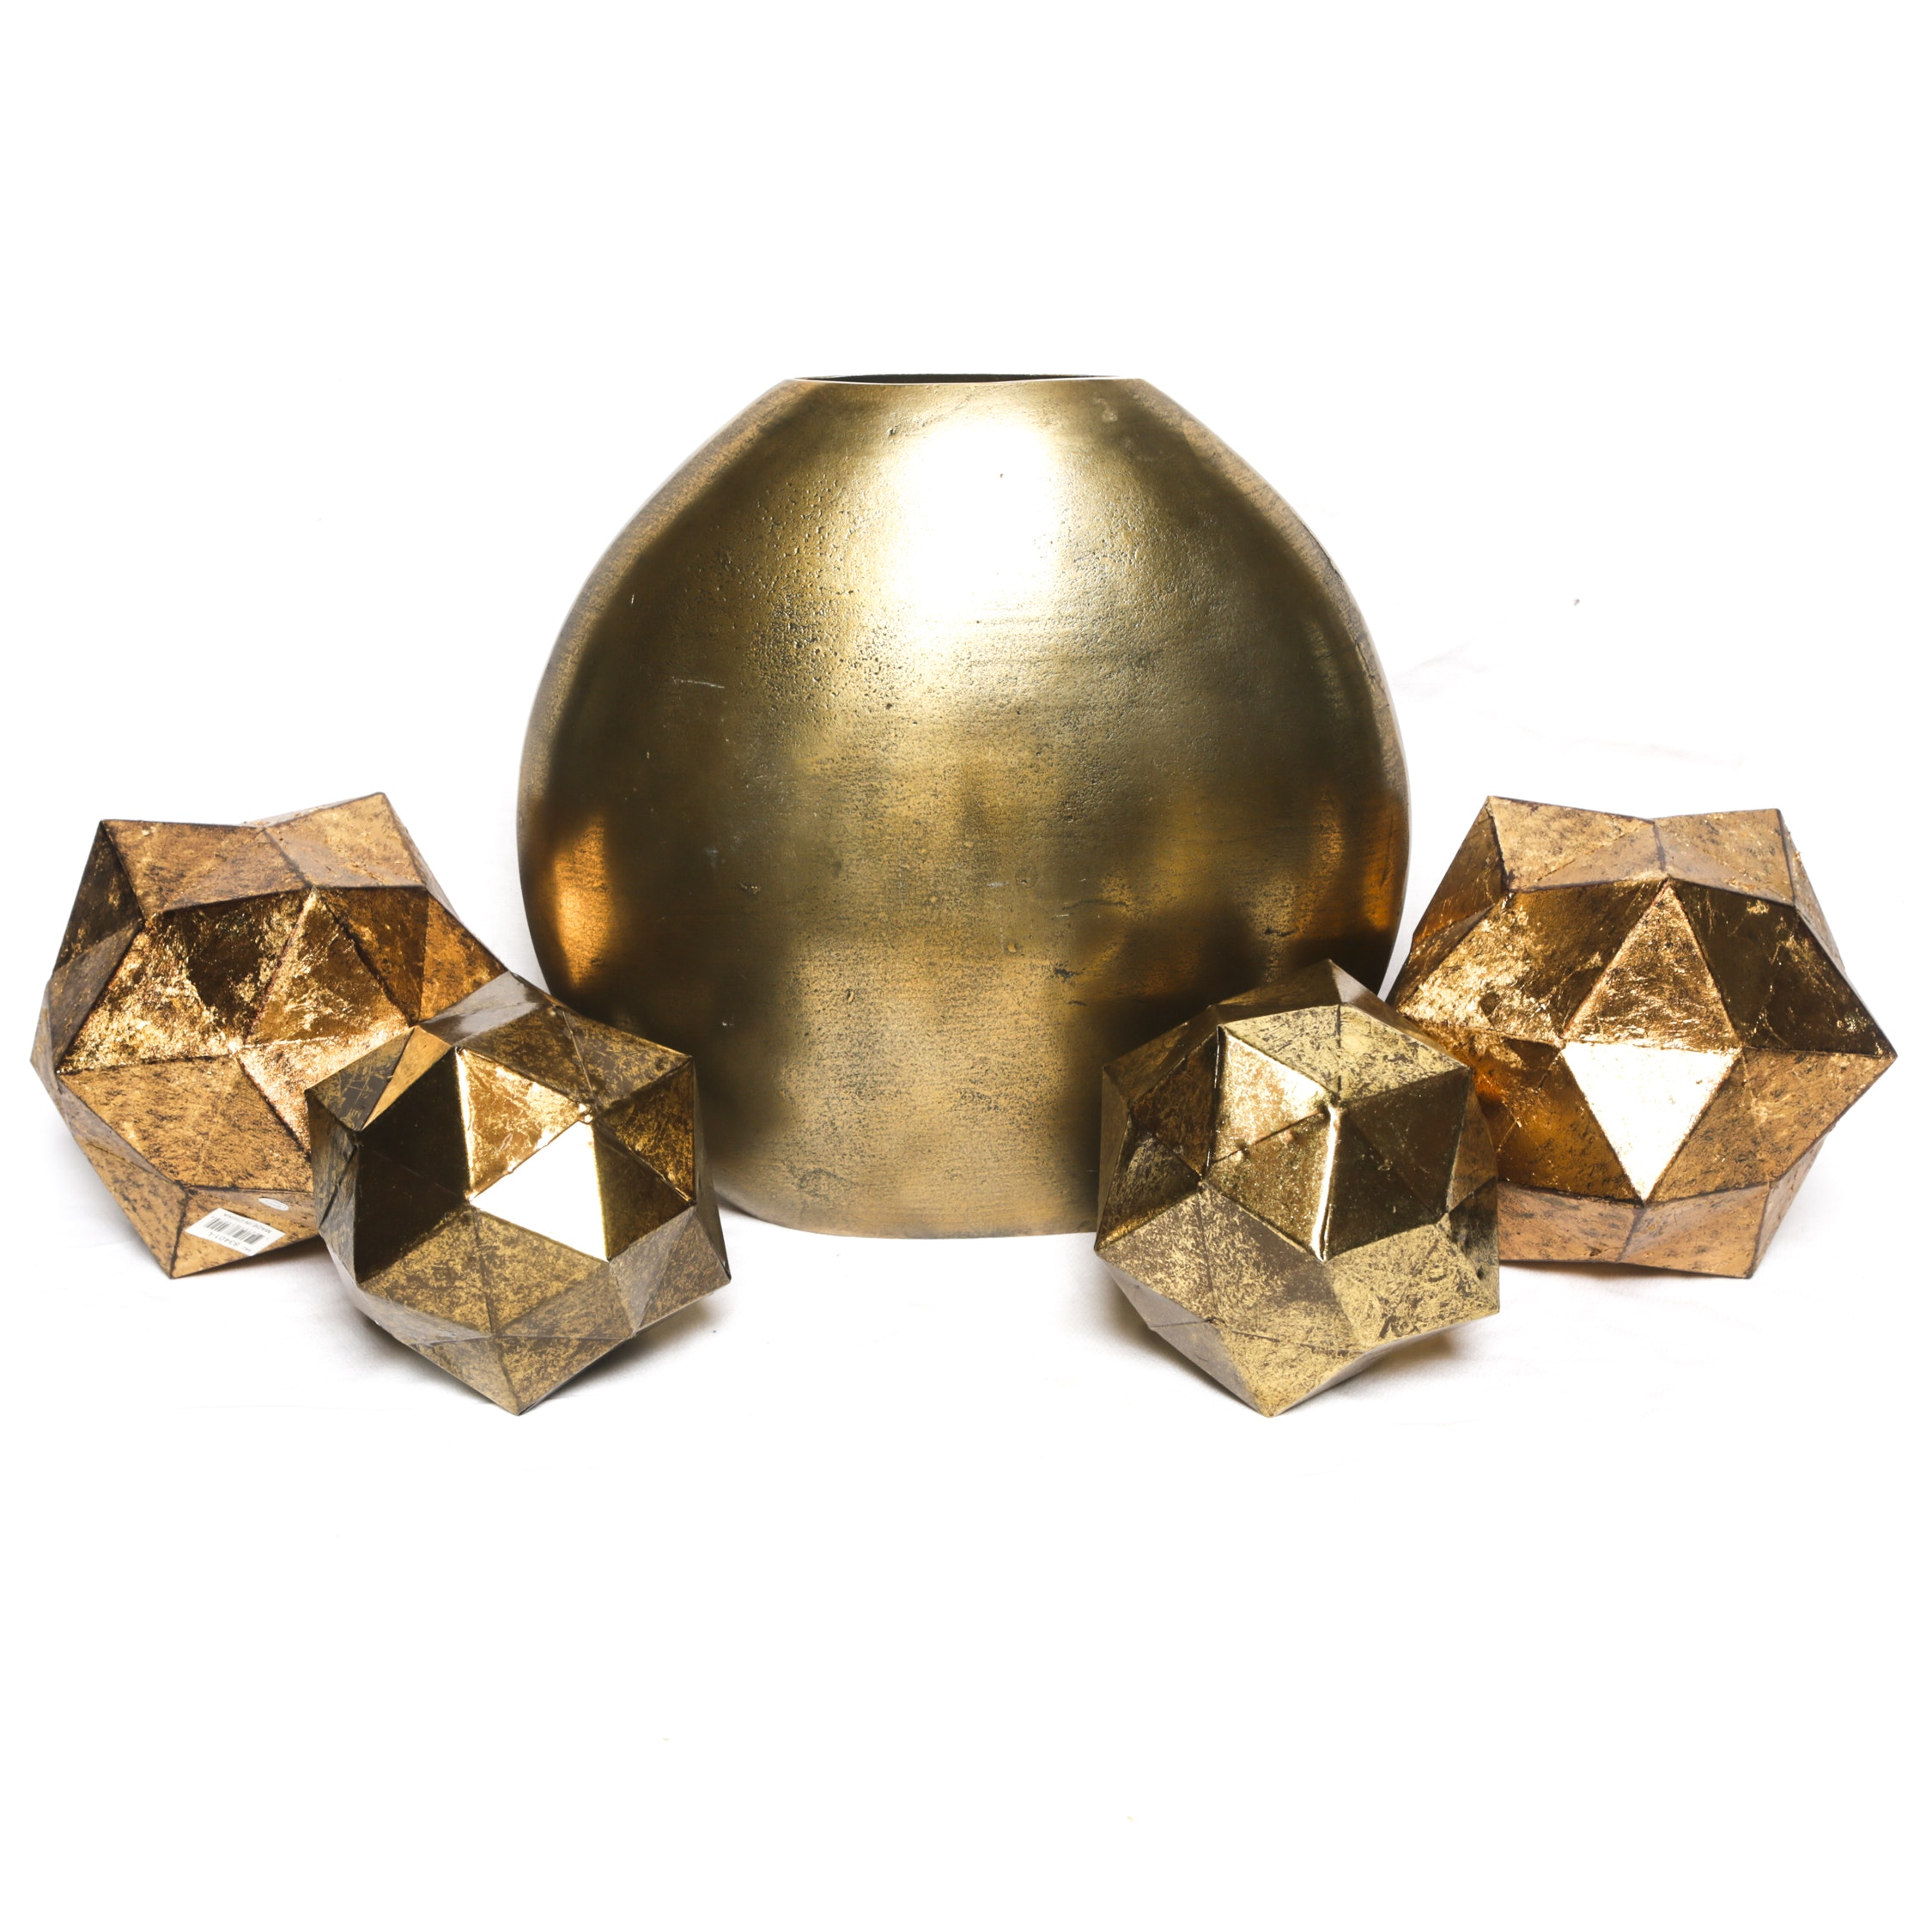 Indian Gold Tone Ovoid Vase and Faceted Orbs with Metallic Finish